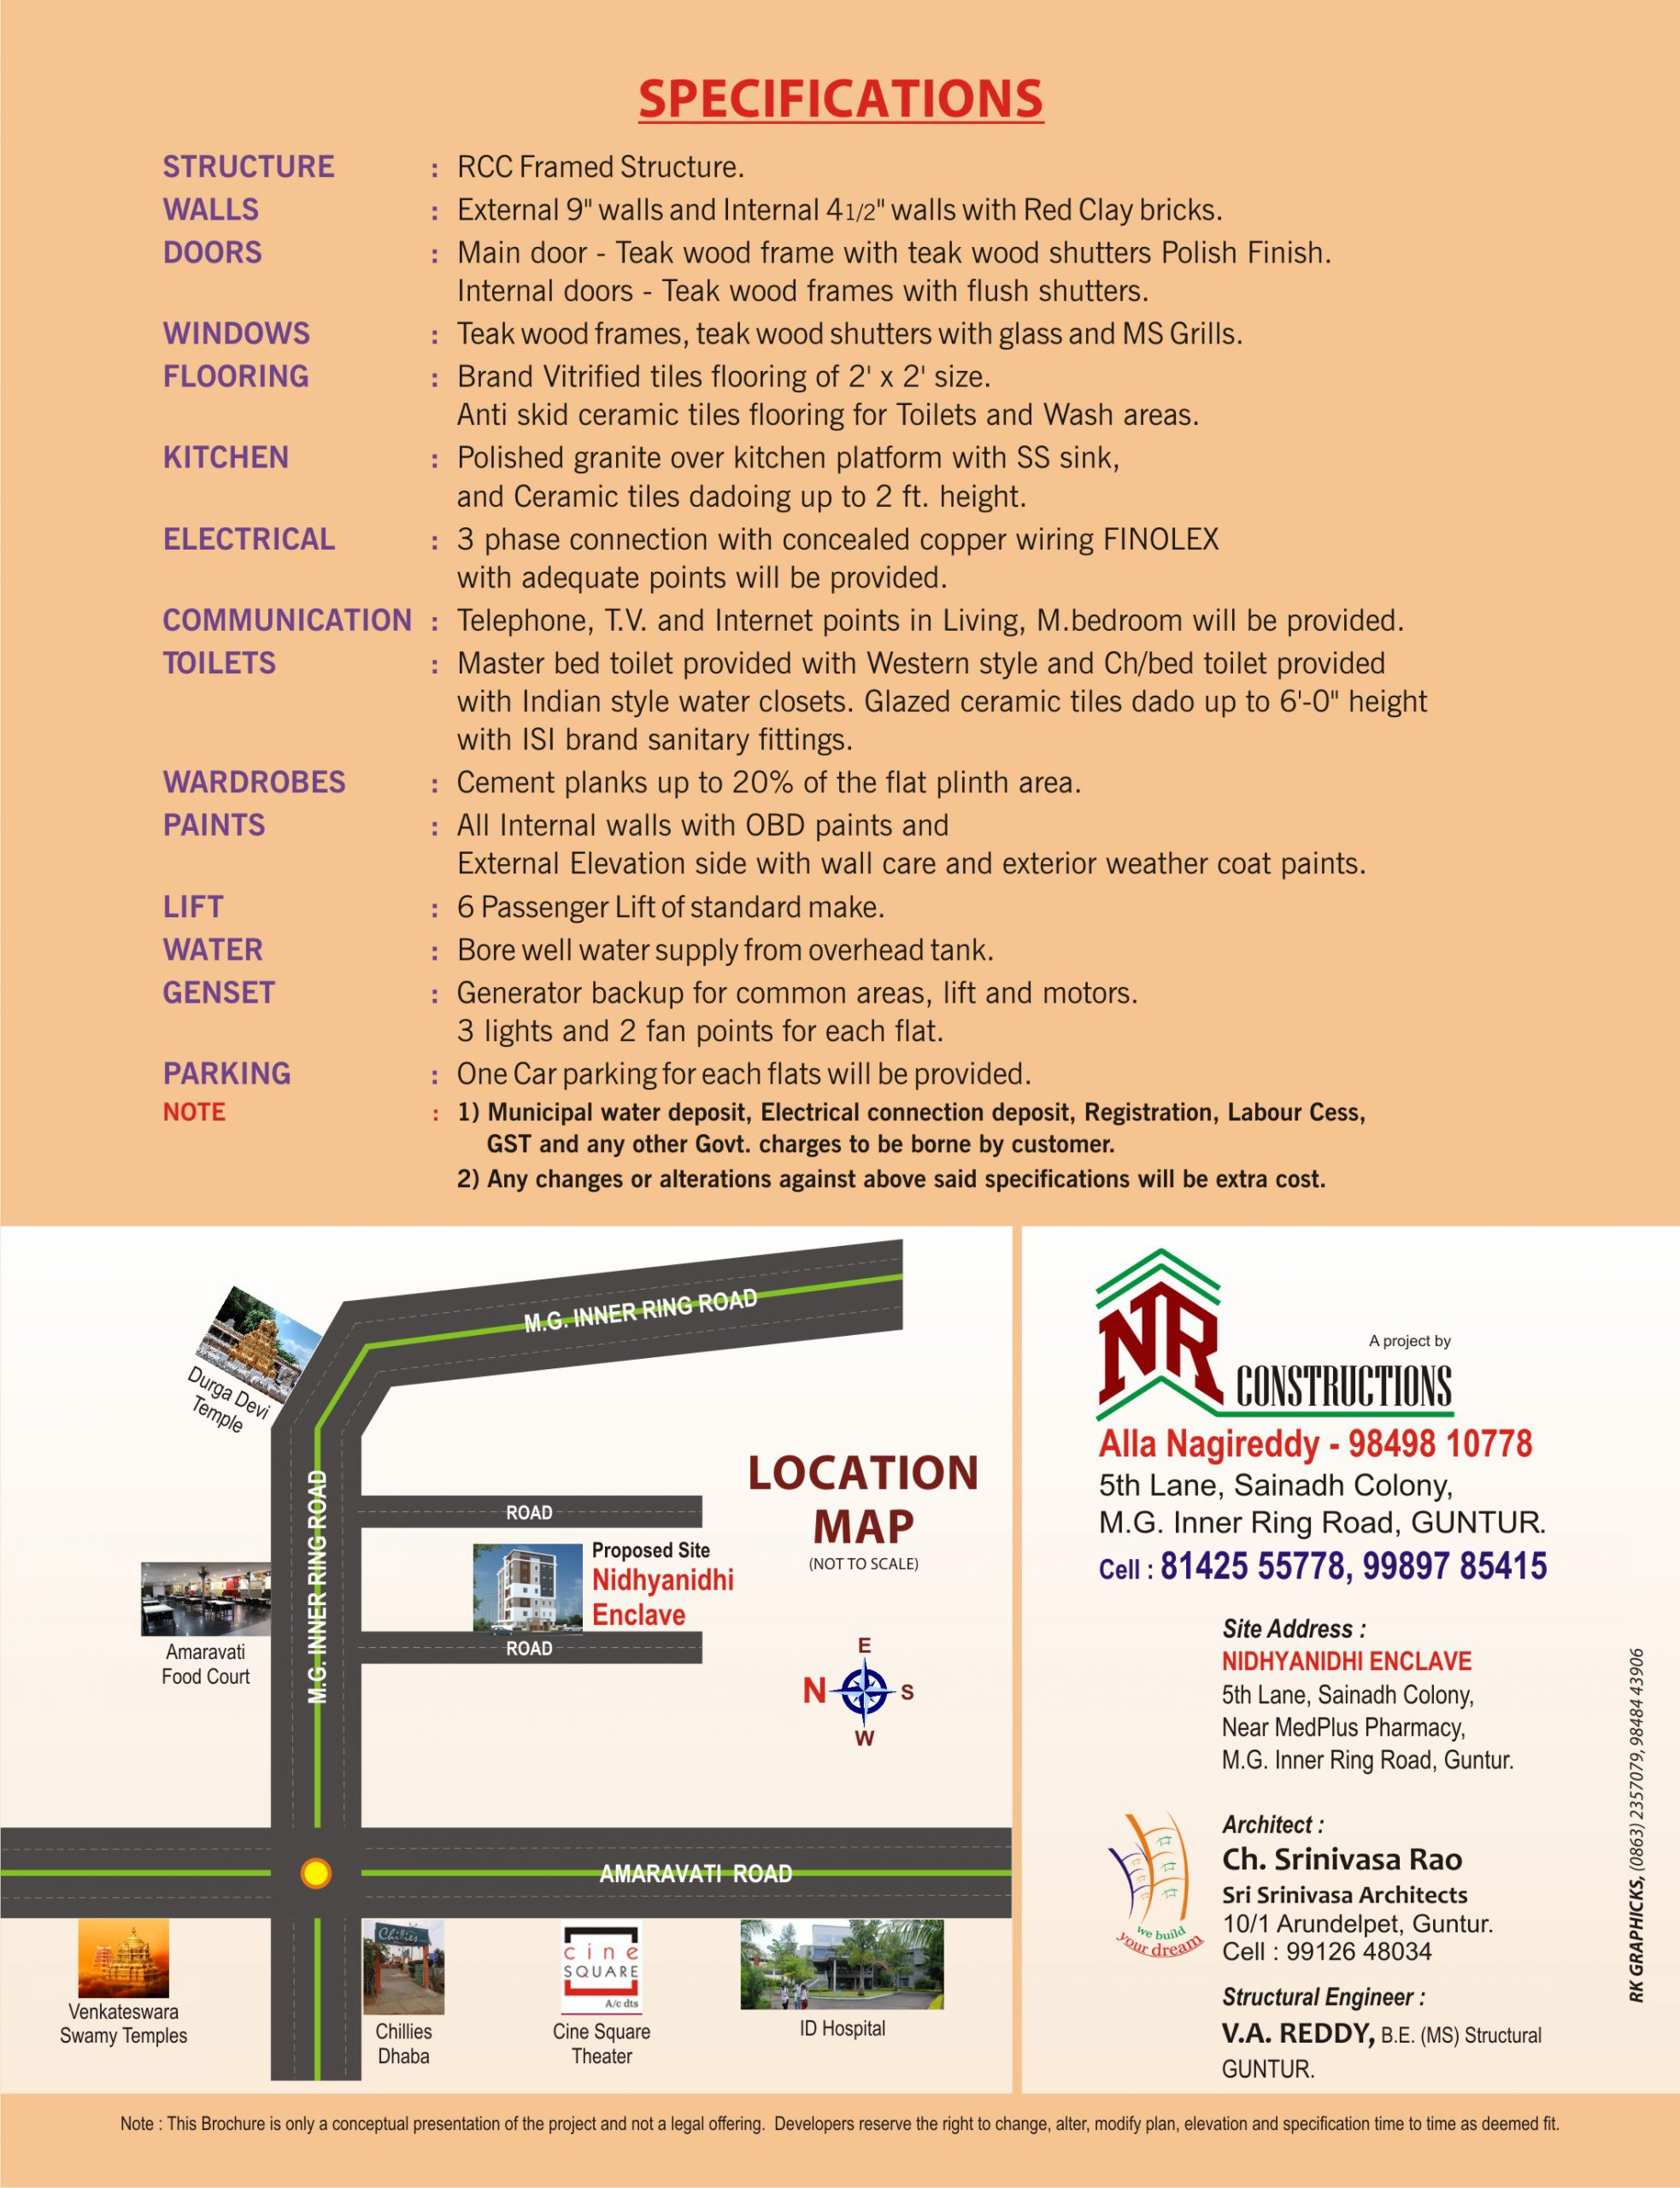 Nidhyanidhi Enclave Specifications